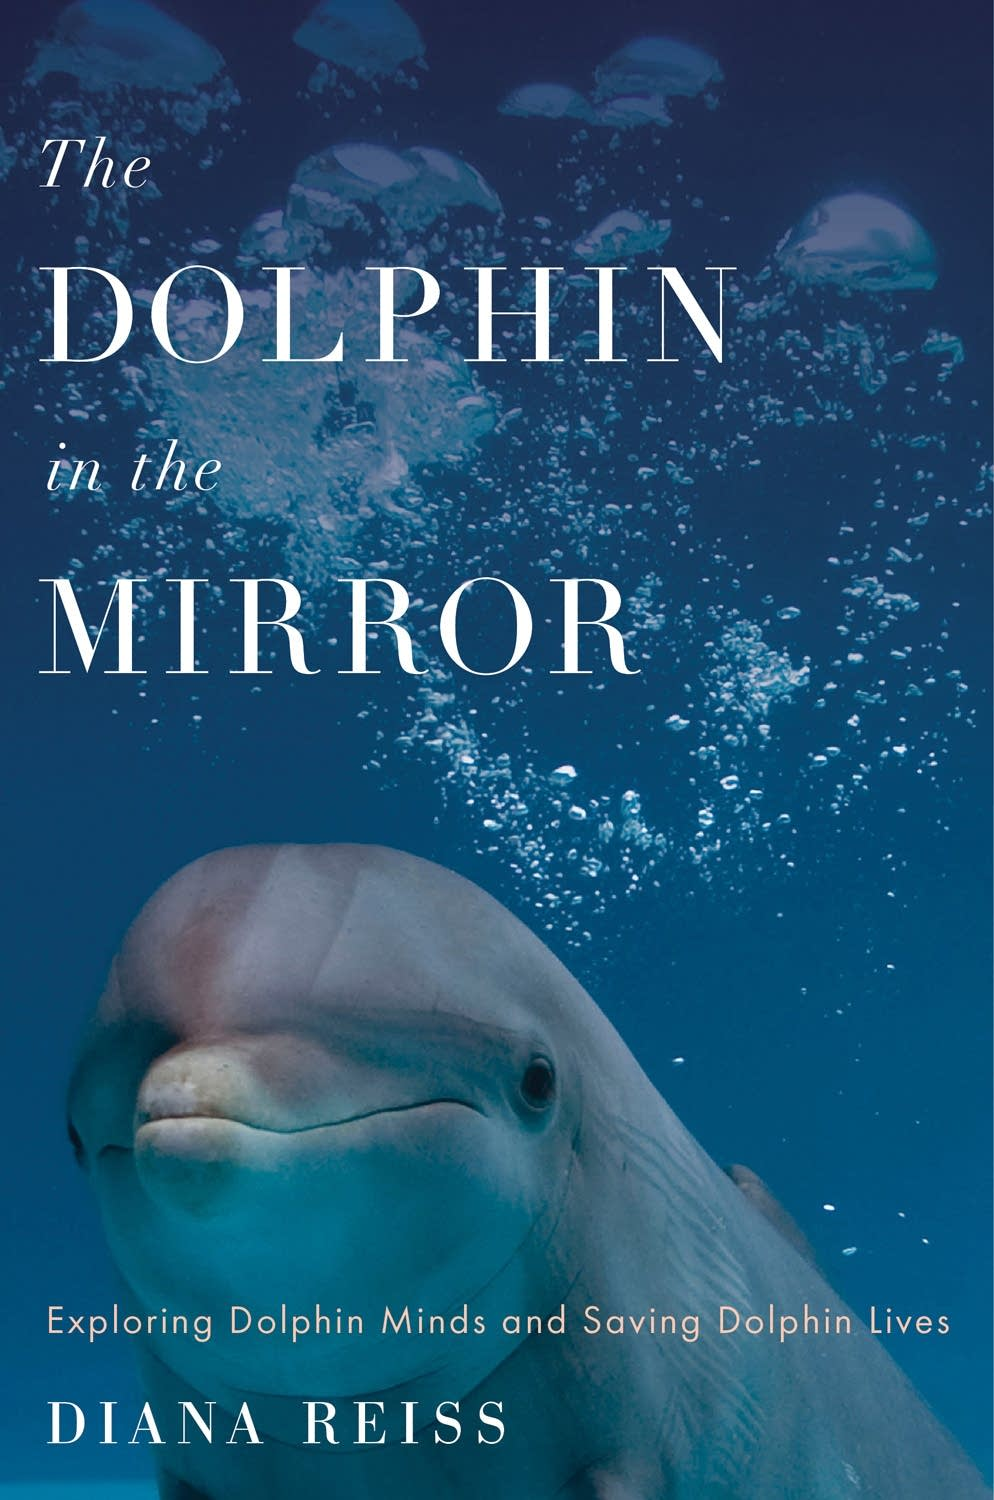 'The Dolphin in the Mirror' by Diana Reiss